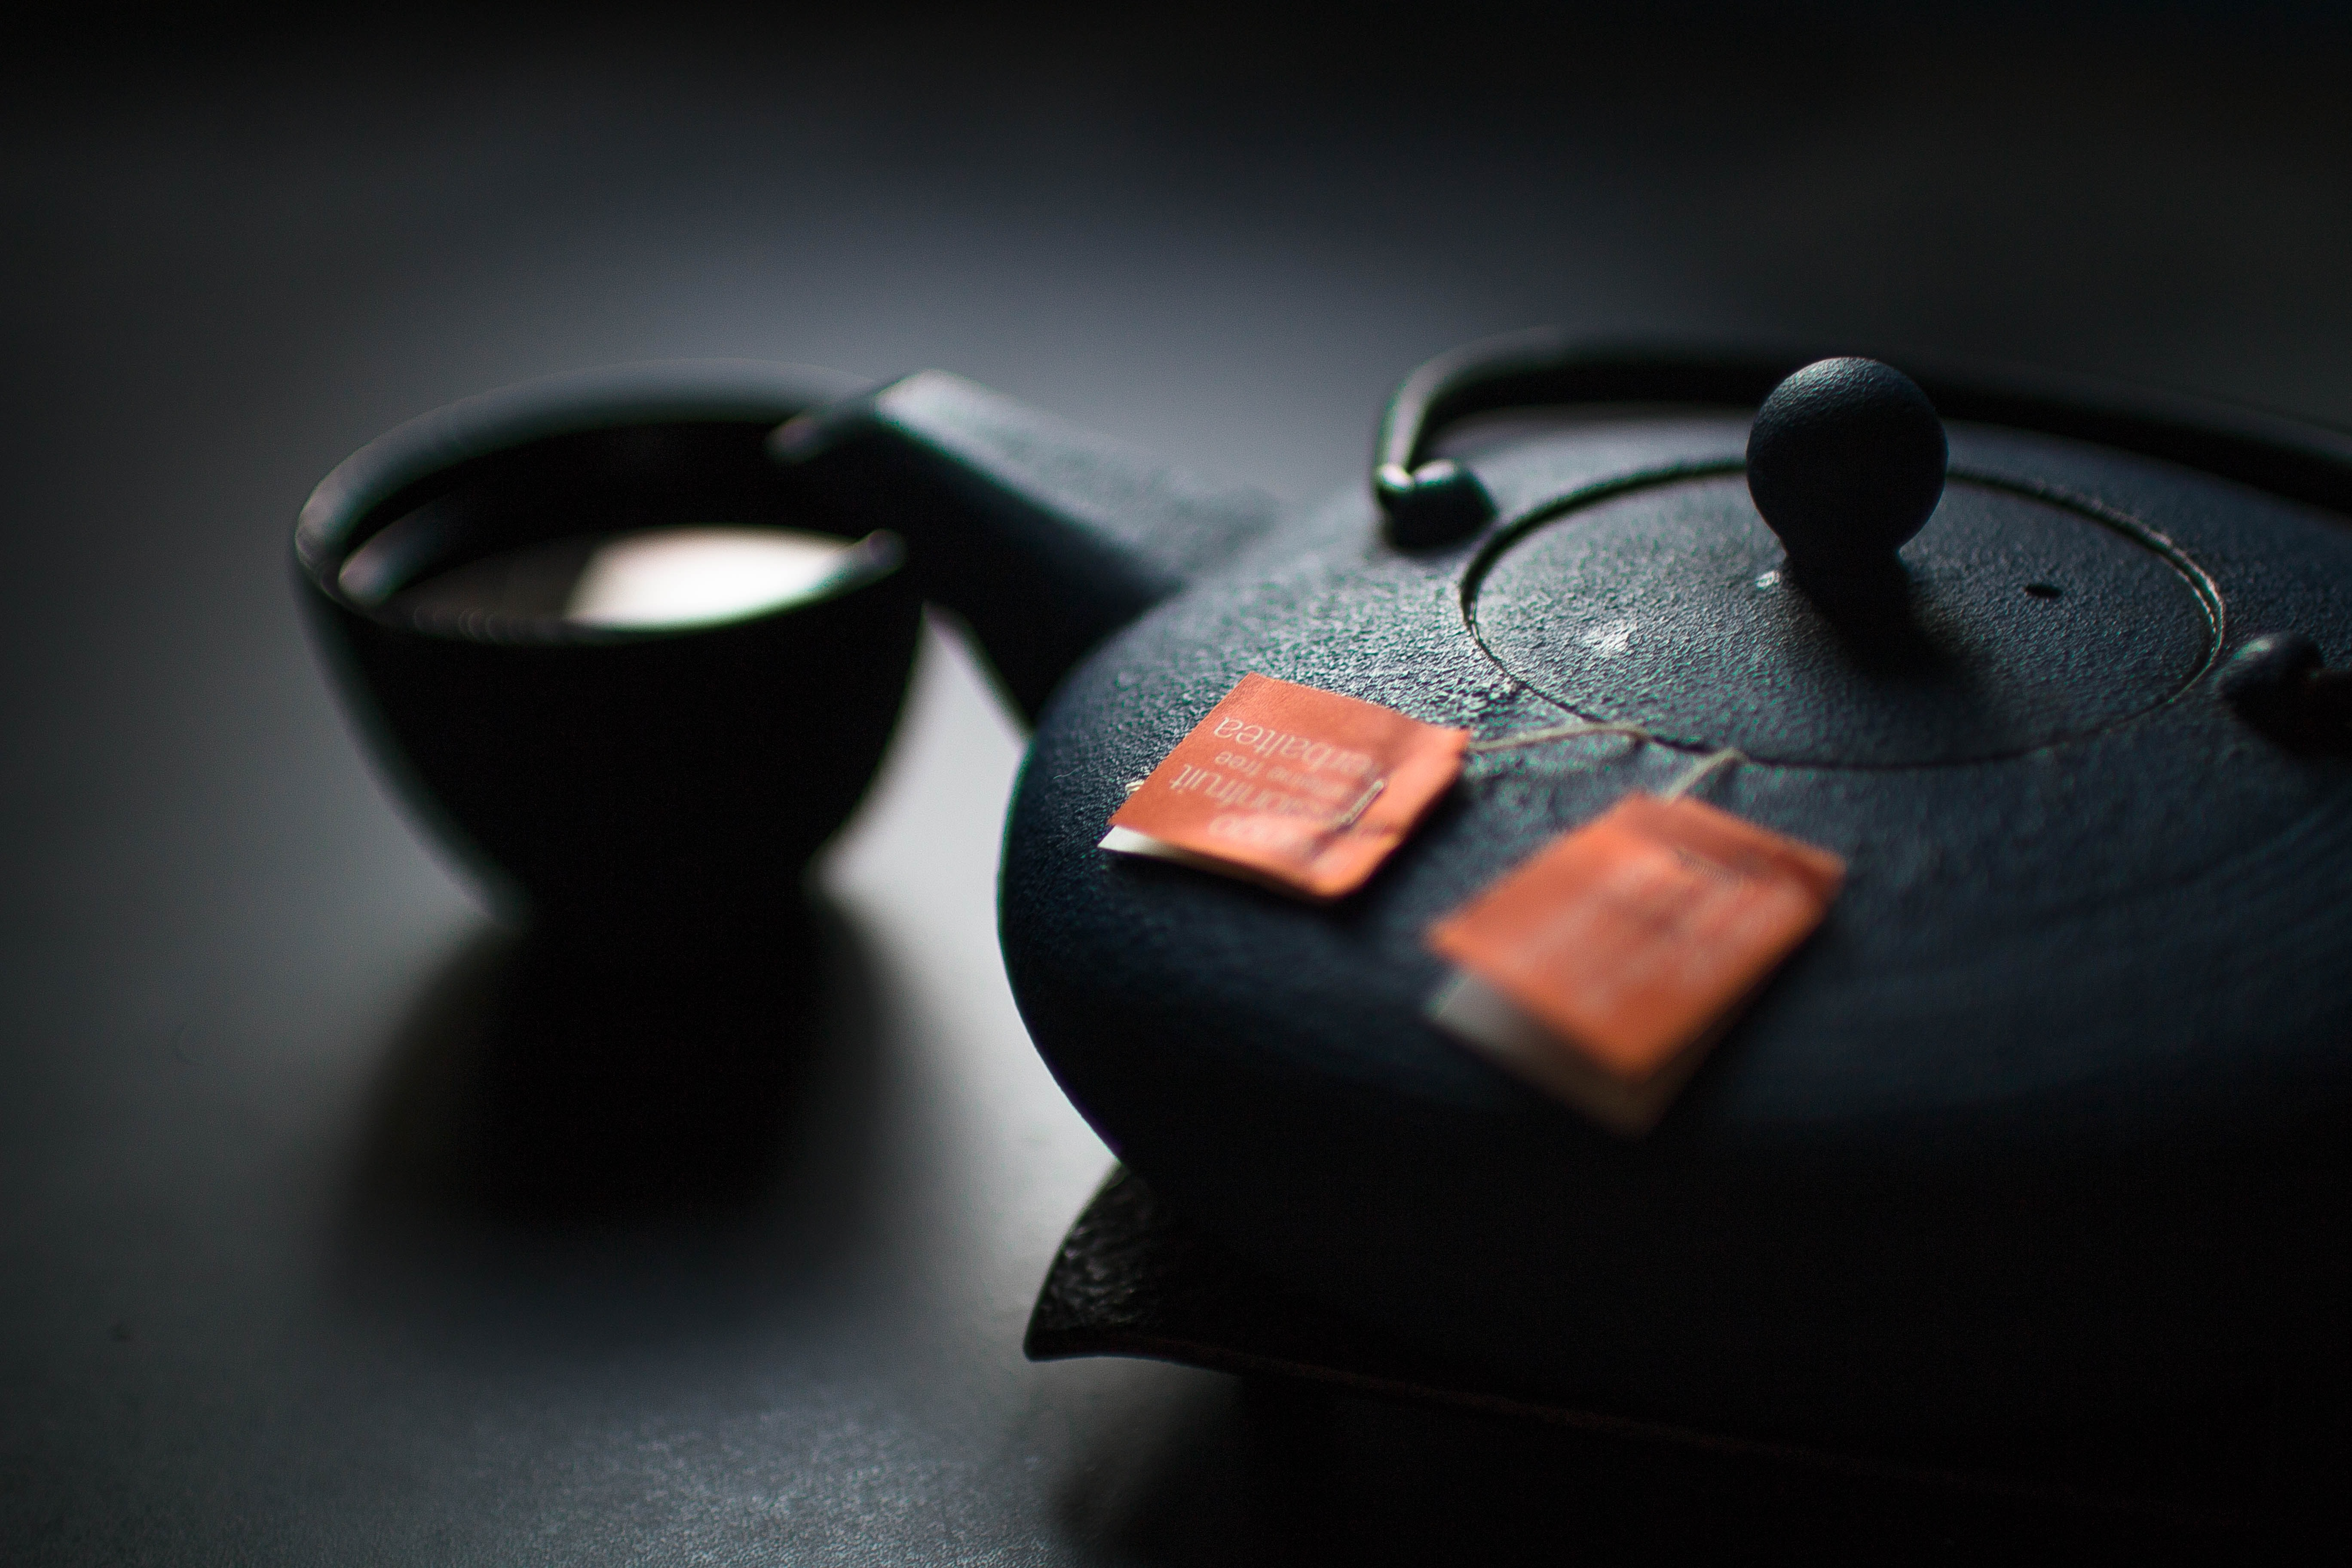 Two tea bags in the black ceramic tea pot with a cup